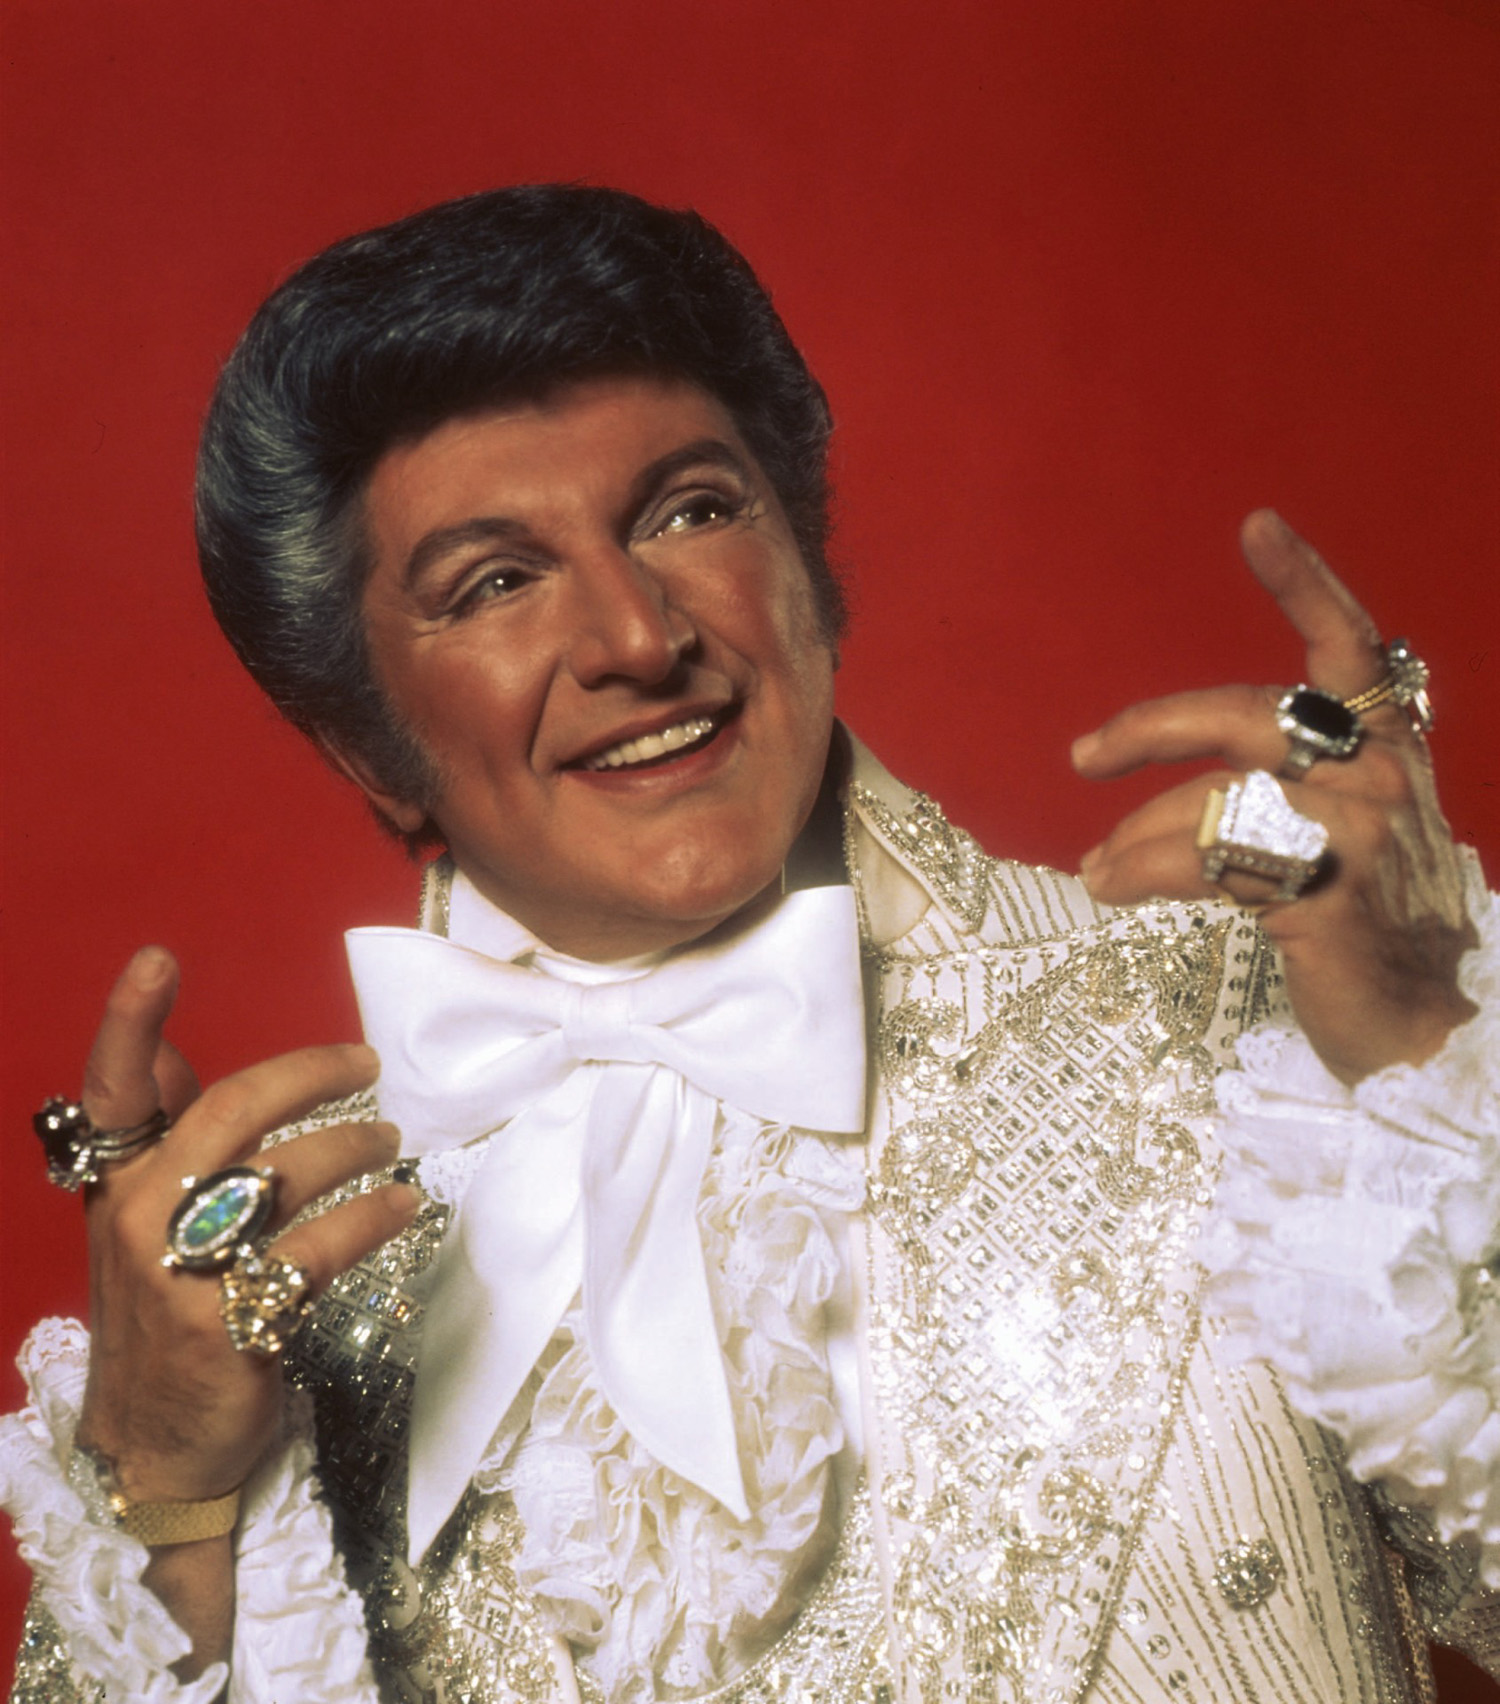 liberace harley davidsonliberace перевод, liberace movie, liberace piano, liberace harley, liberace mp3, liberace museum, liberace house of crap, liberace robert, liberace pianist, liberace - the sound of love, liberace satanist, liberace chopsticks, liberace ak 47, liberace harley davidson, liberace foundation, liberace photo, liberace letterman, liberace grave, liberace a exkulpace, liberace photo gallery